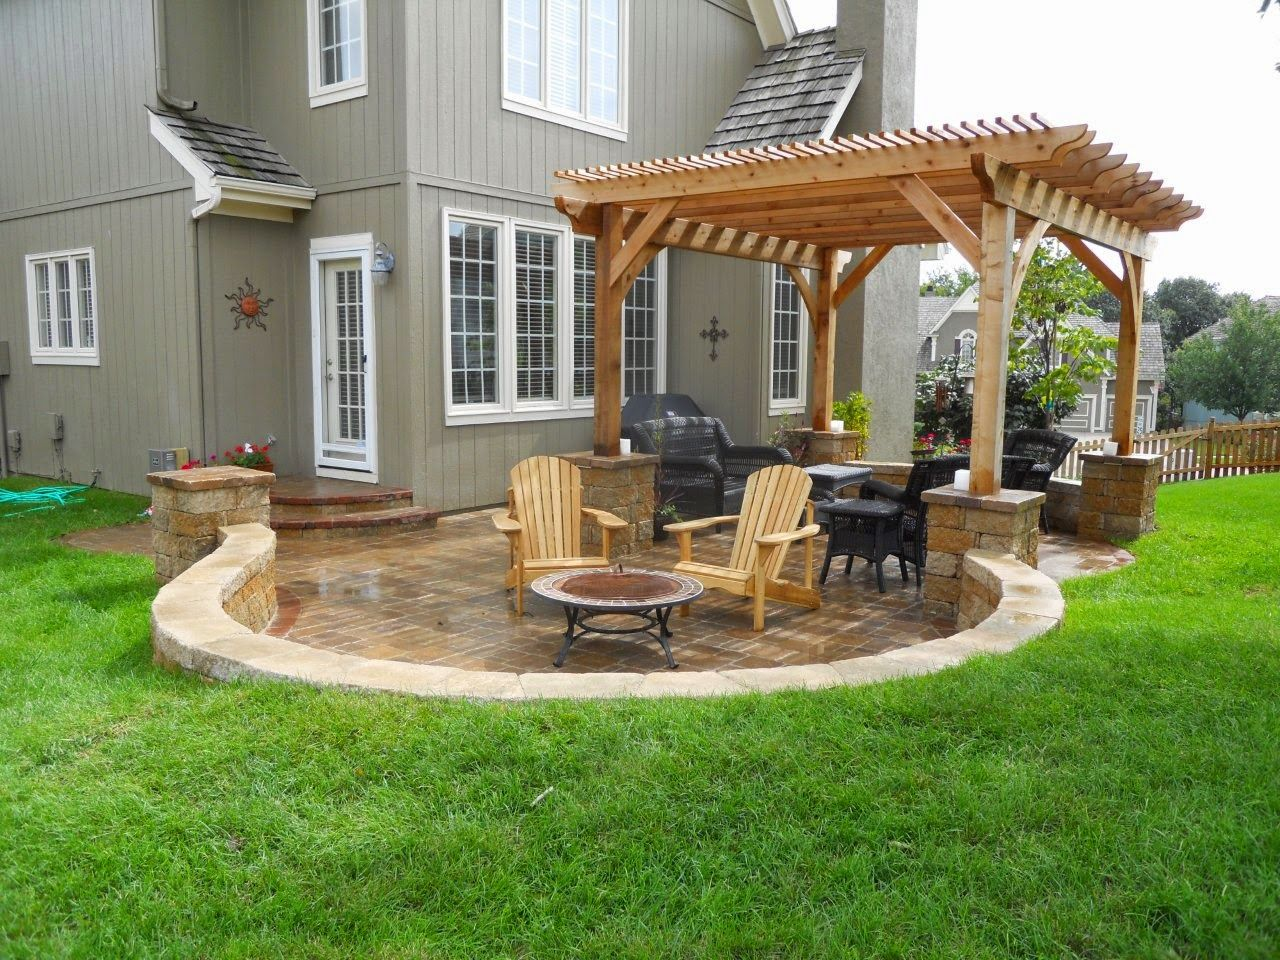 Surprising Back Porch Idea with Wooden Gazebo Designs and Fire Pit also  Black Chairs Design - Surprising Back Porch Idea With Wooden Gazebo Designs And Fire Pit